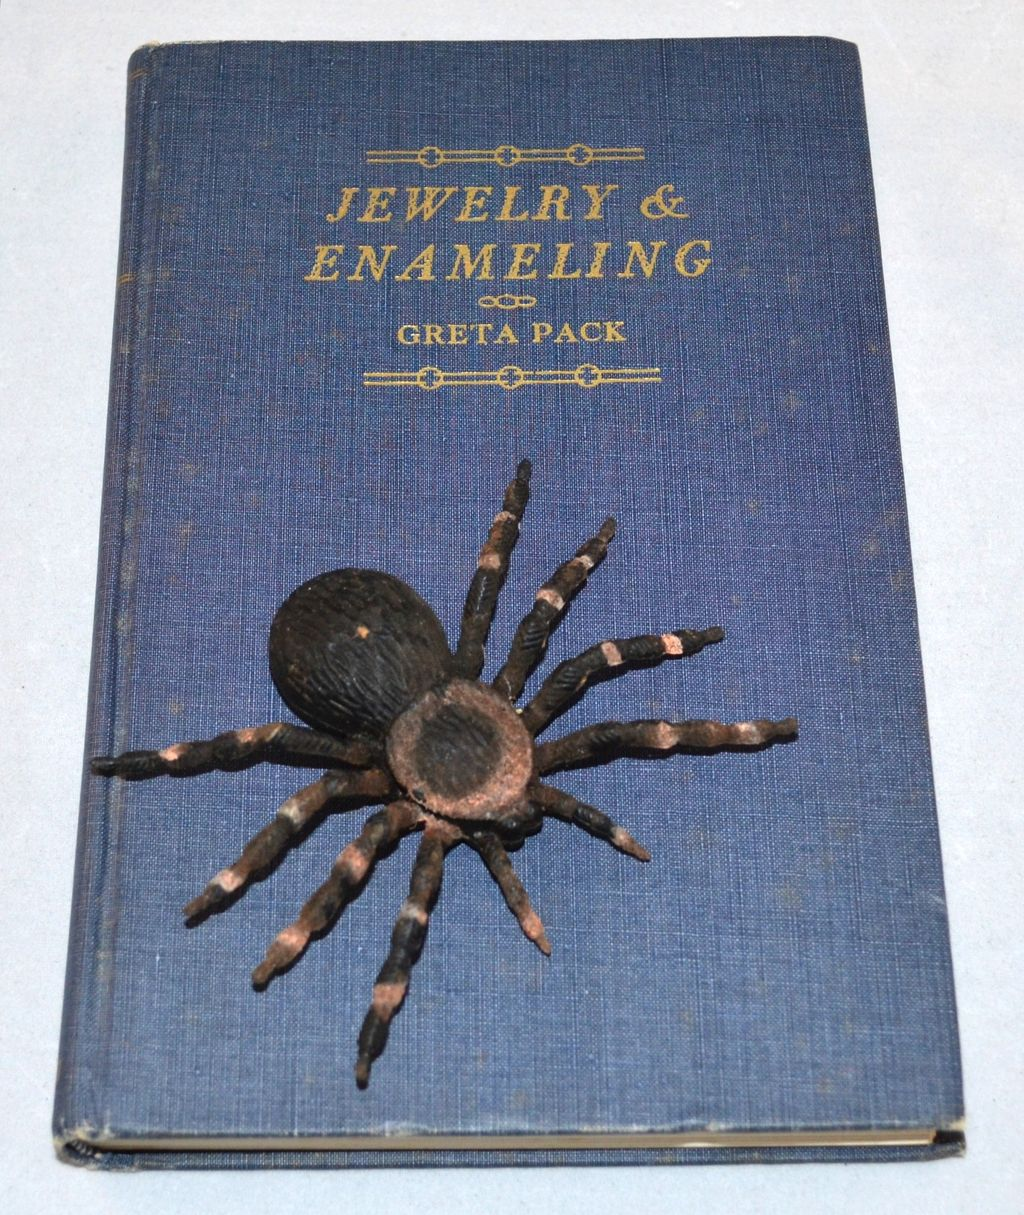 1953 Jewelry & Enameling Blue Cloth Hardcover Book